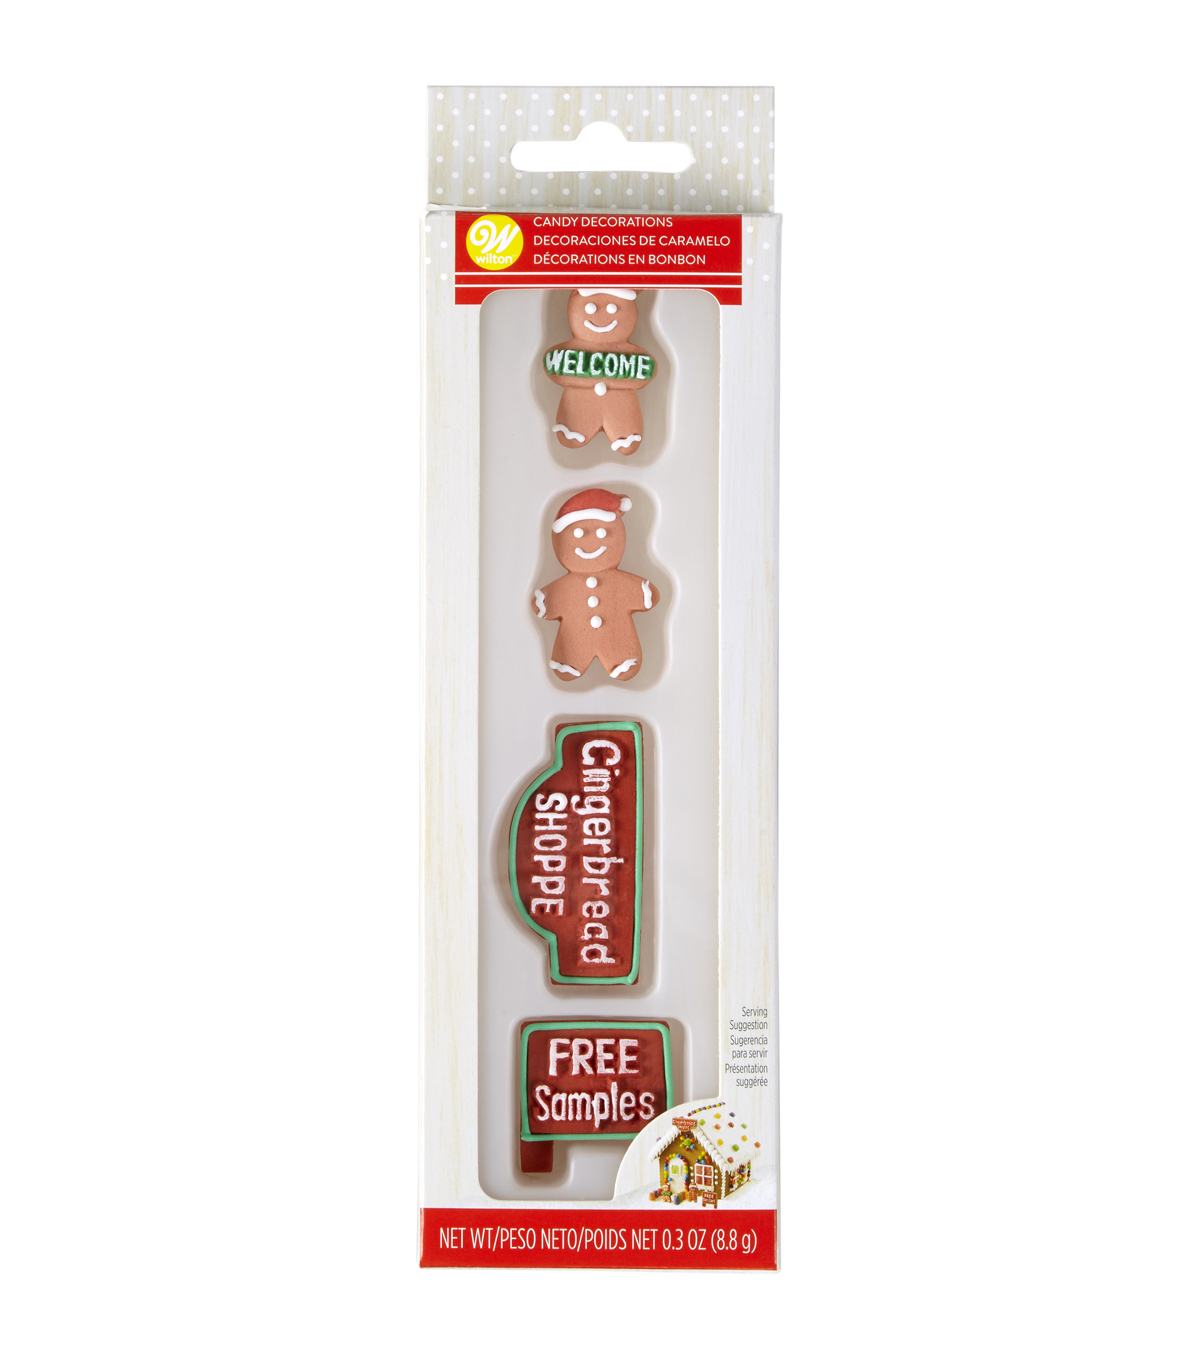 Wilton® 4 pk Gingerbread Men & Holiday Signs Candy Decorations